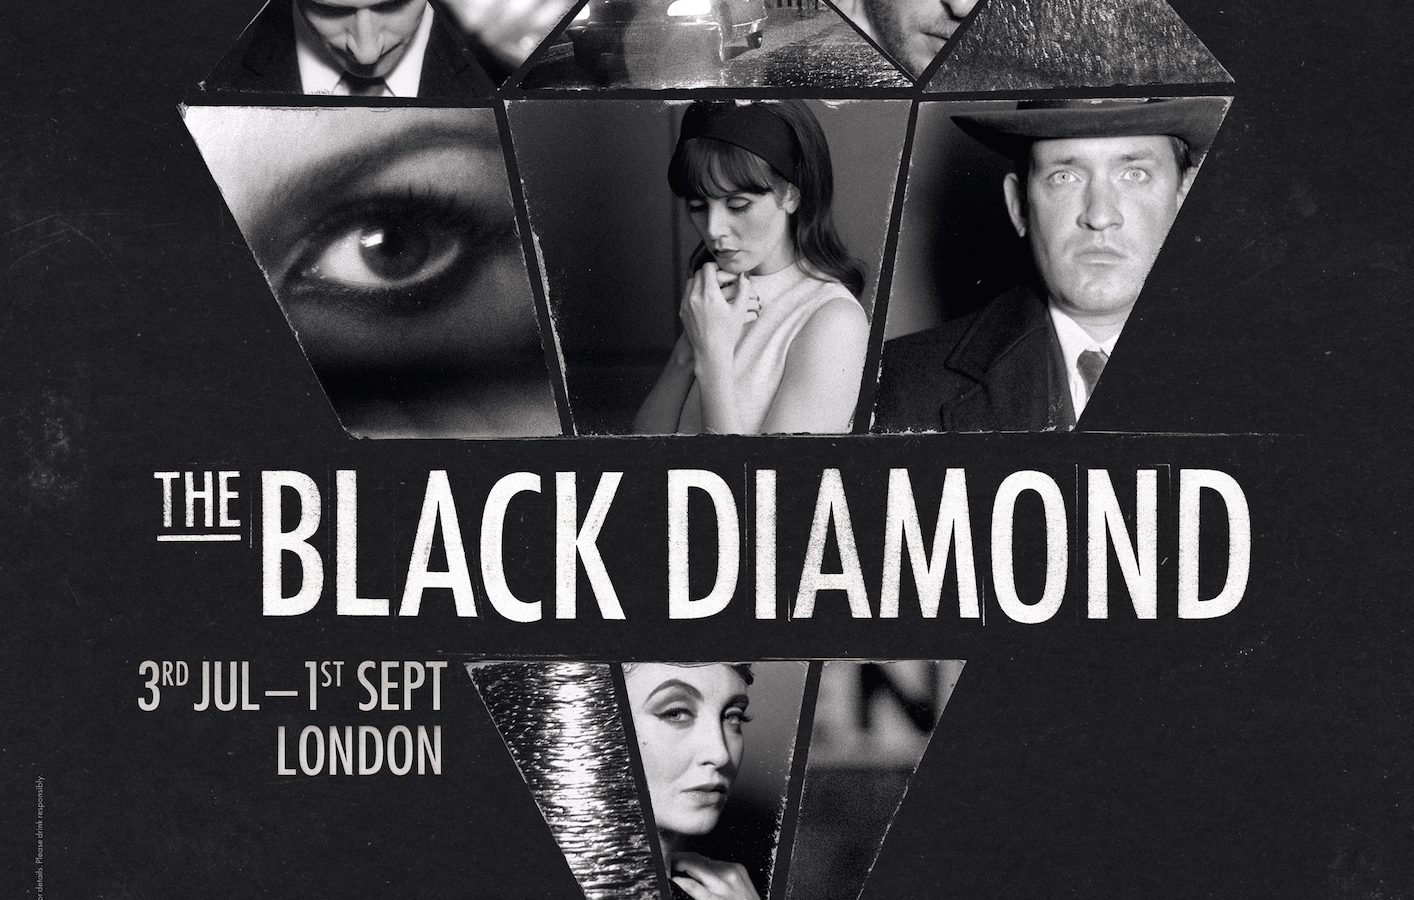 The Black Diamond show poster